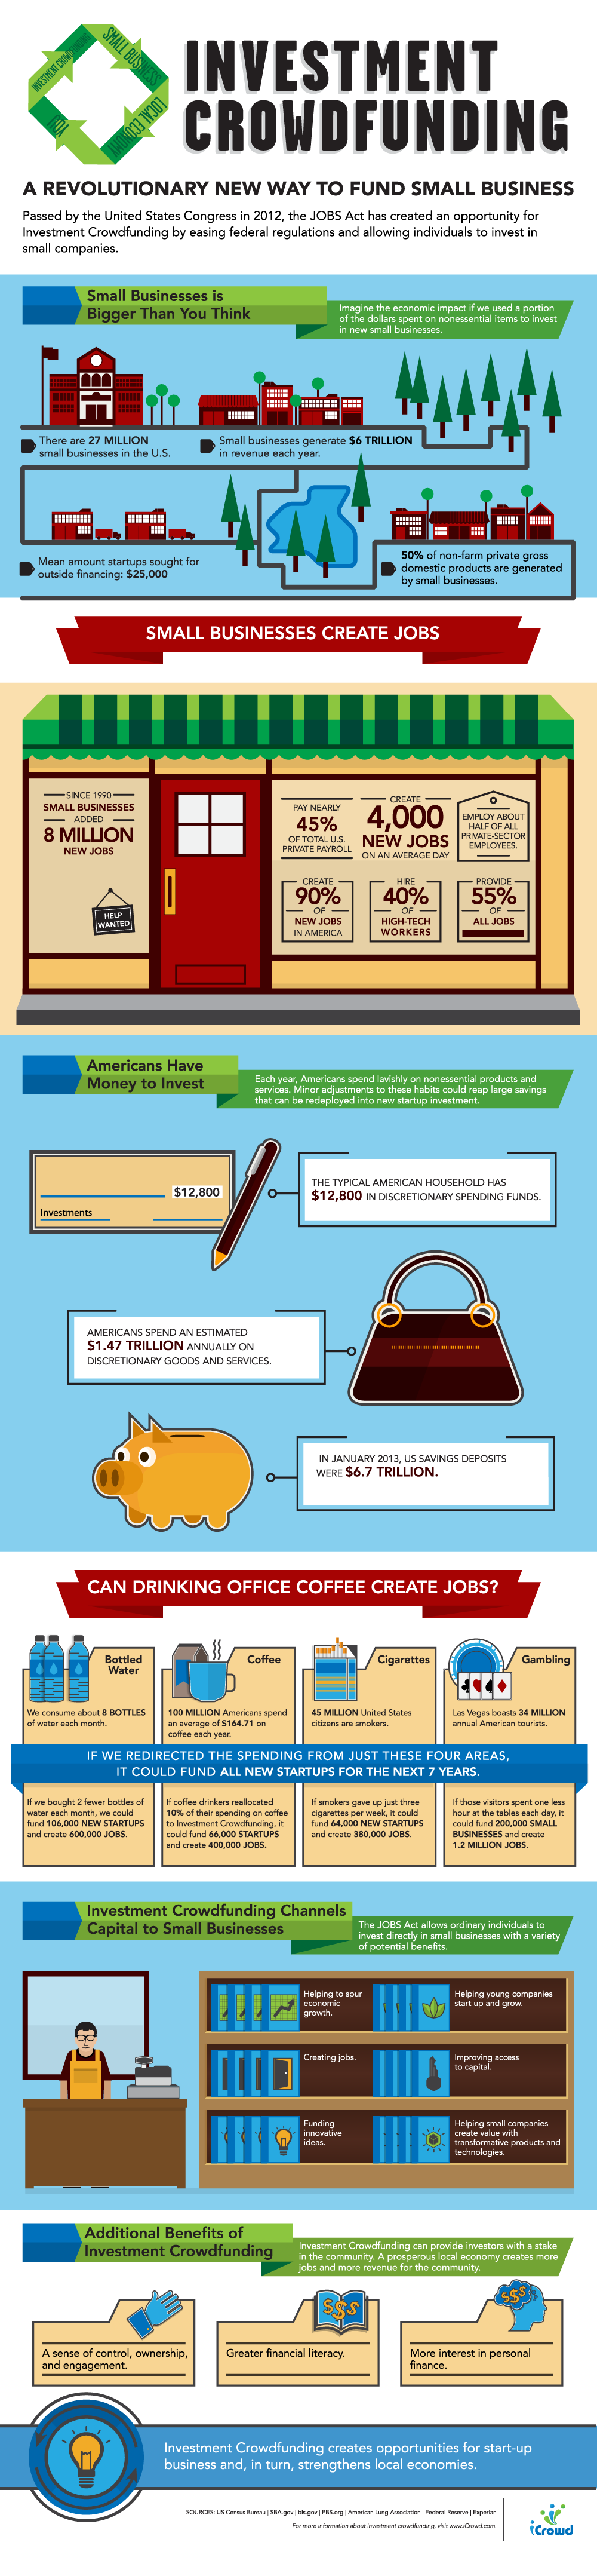 2013-03-14-iCrowdInvestmentCrowdfundinginfographic.png